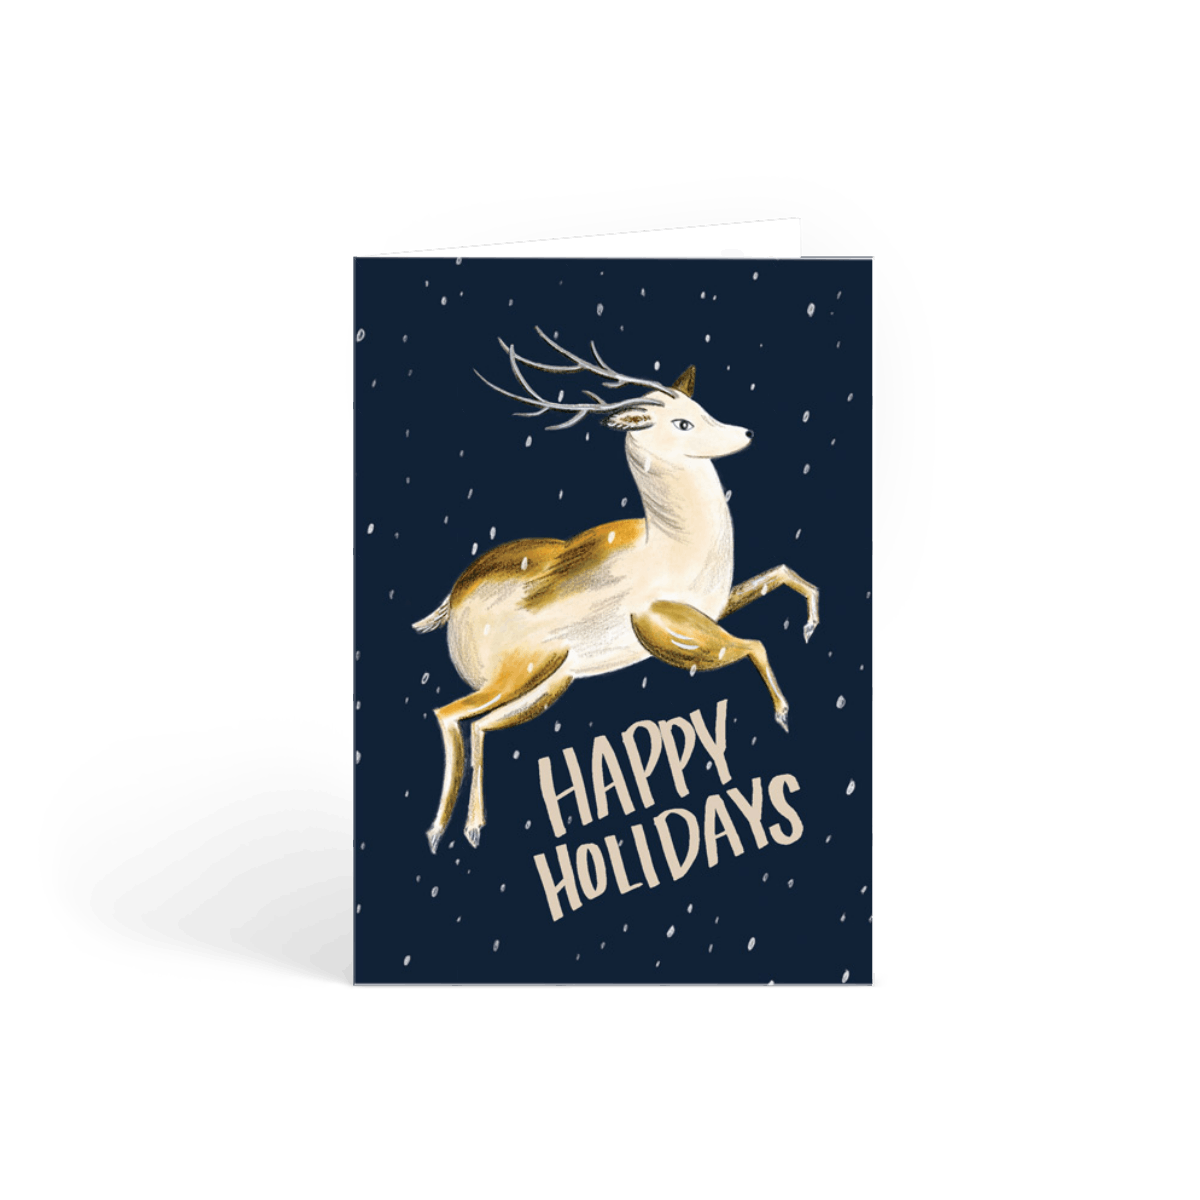 Https%3a%2f%2fwww.papier.com%2fproduct image%2f51201%2f2%2fflying reindeer 12543 front 1540393470.png?ixlib=rb 1.1